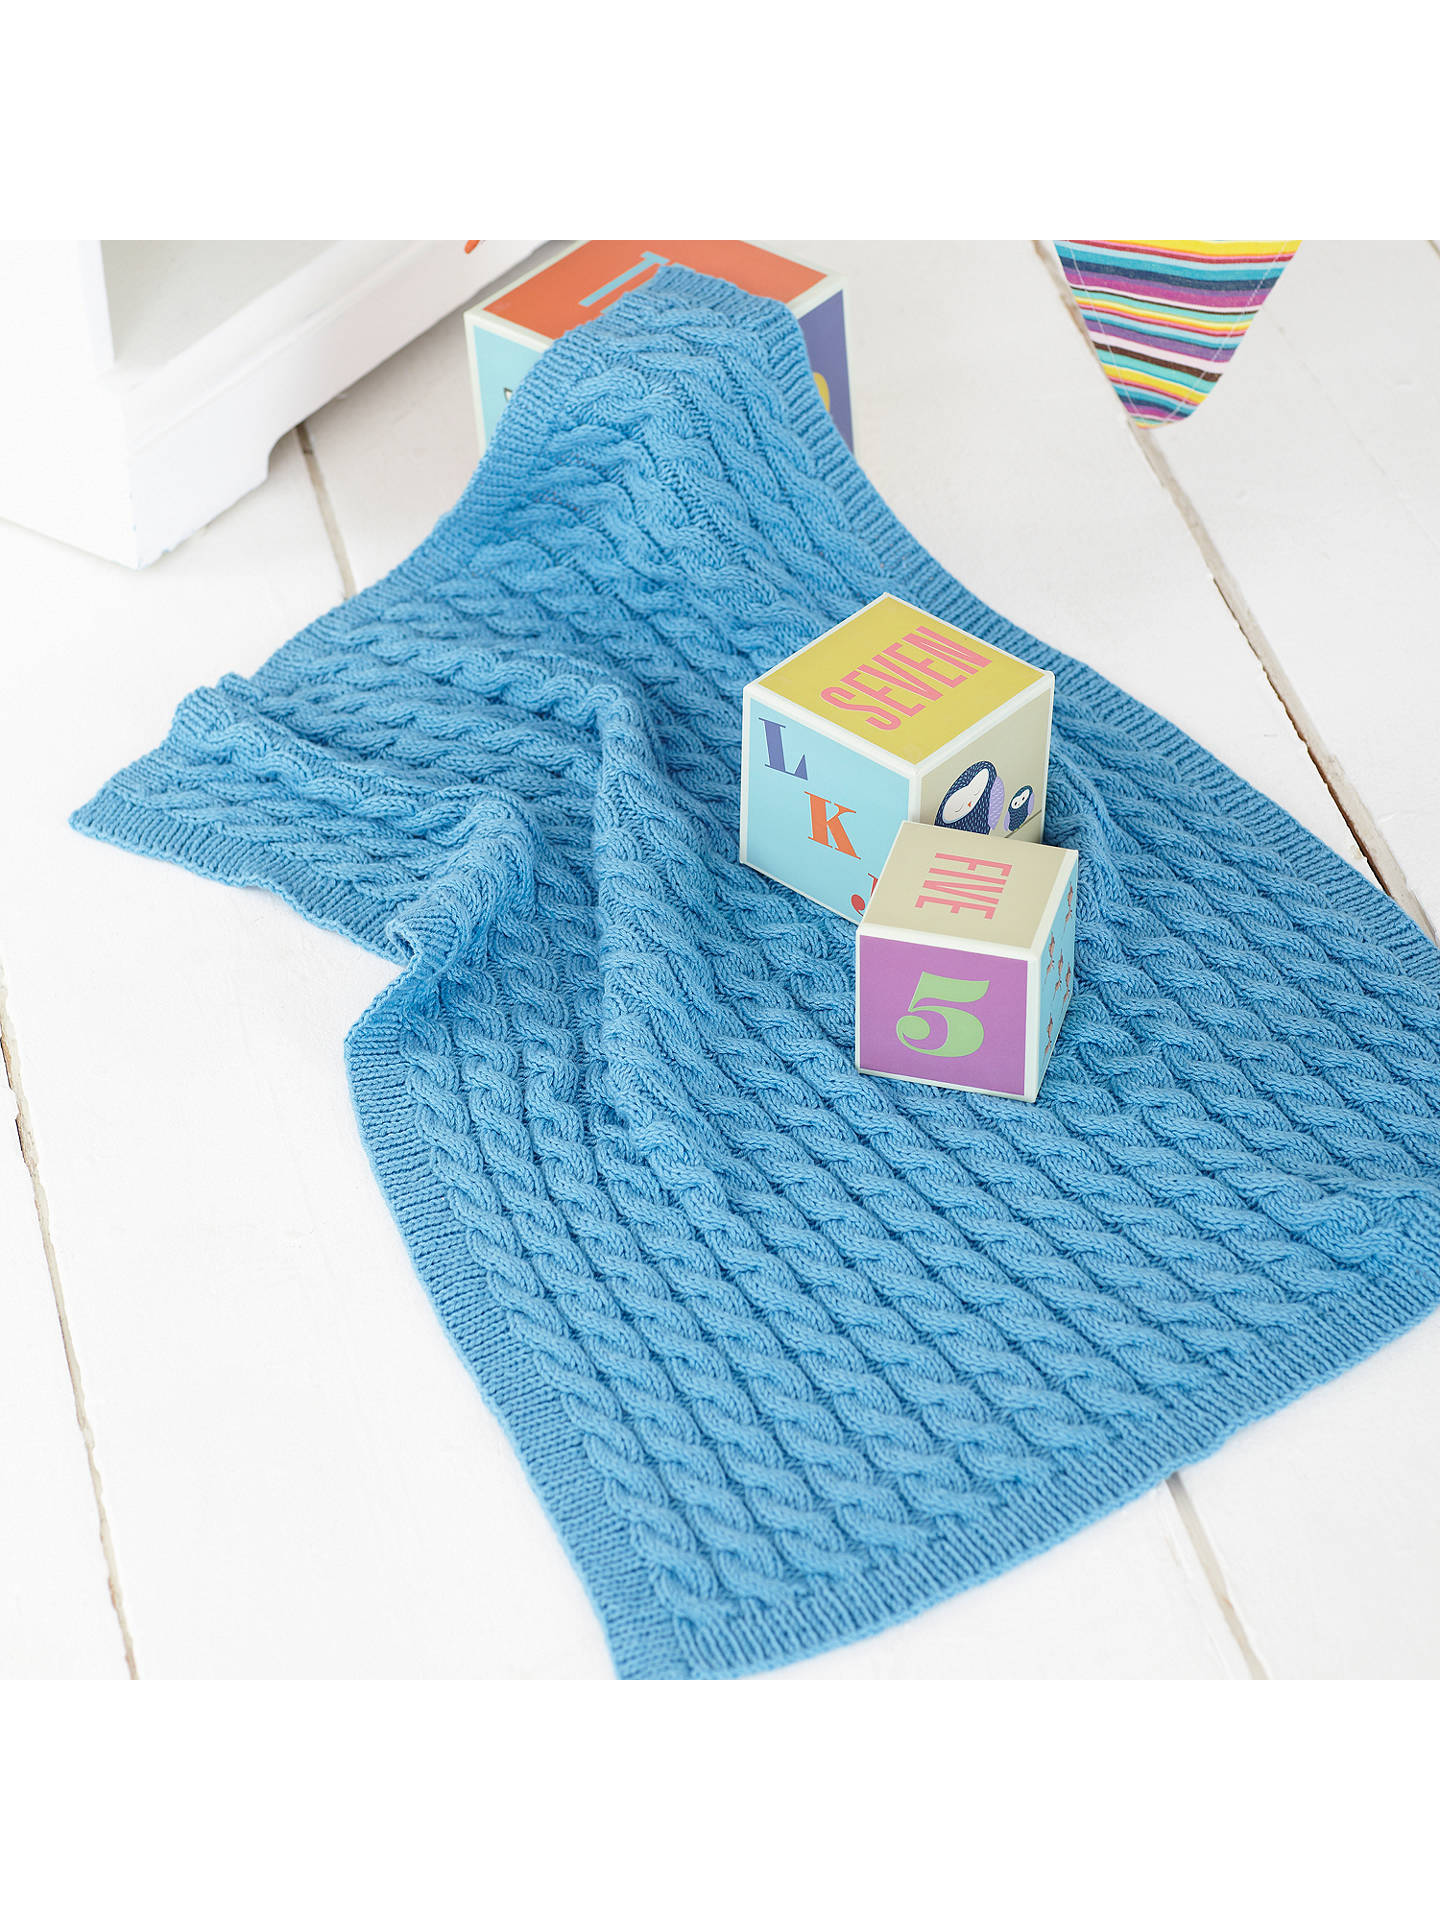 0e1d74e9a ... Buy Sirdar Snuggly Baby Bamboo Little Treasures Knitting Pattern Book  Online at johnlewis.com